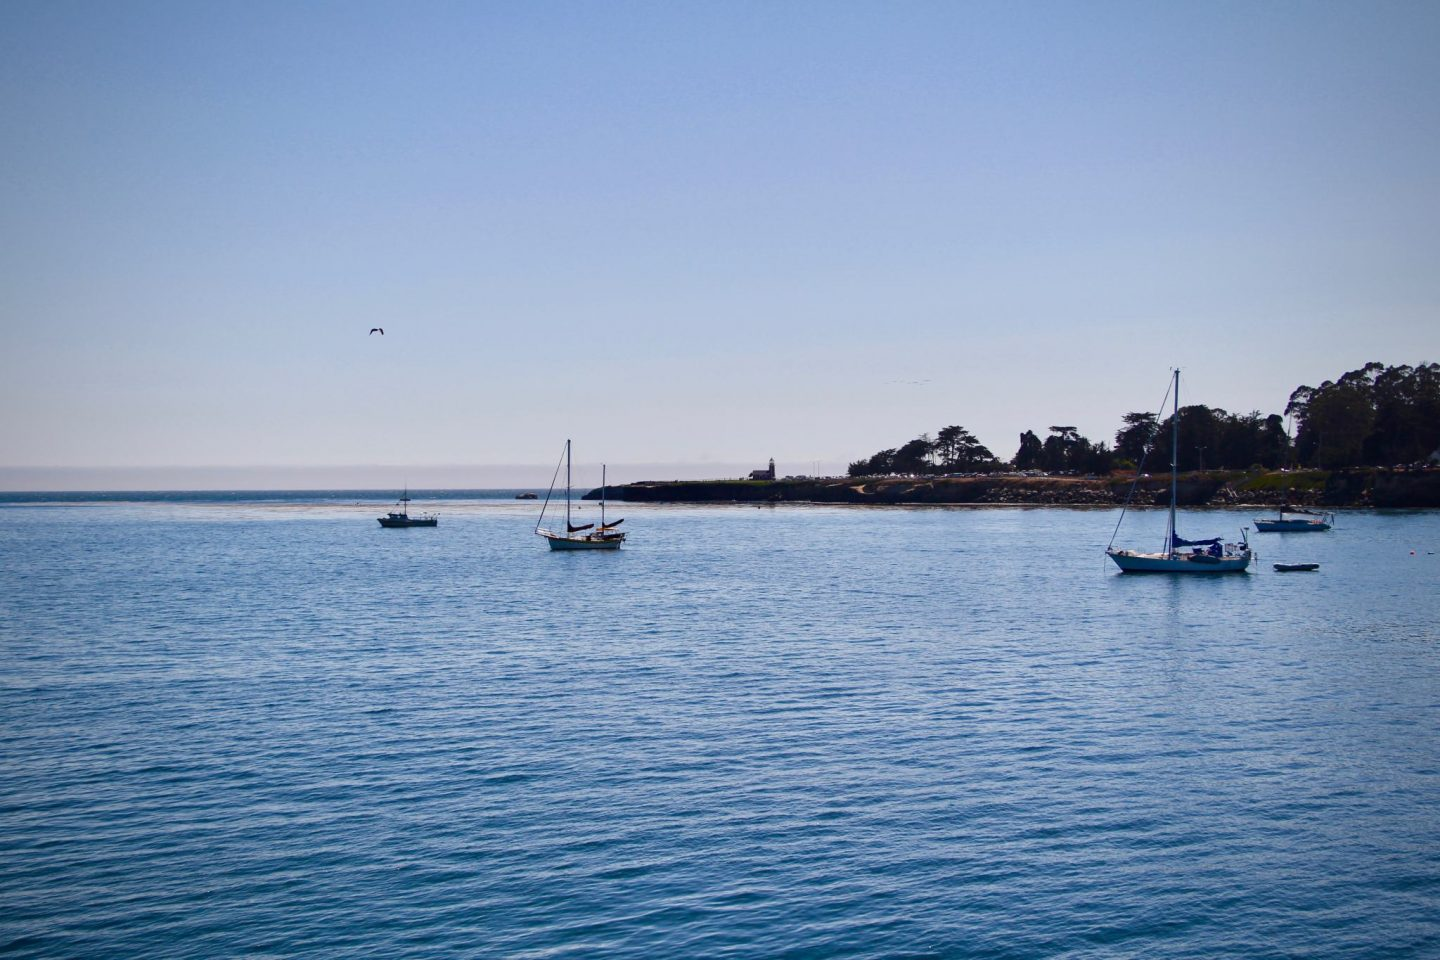 Santa Cruz Harbor at sunset, Santa Cruz, California - The Spectacular Adventurer